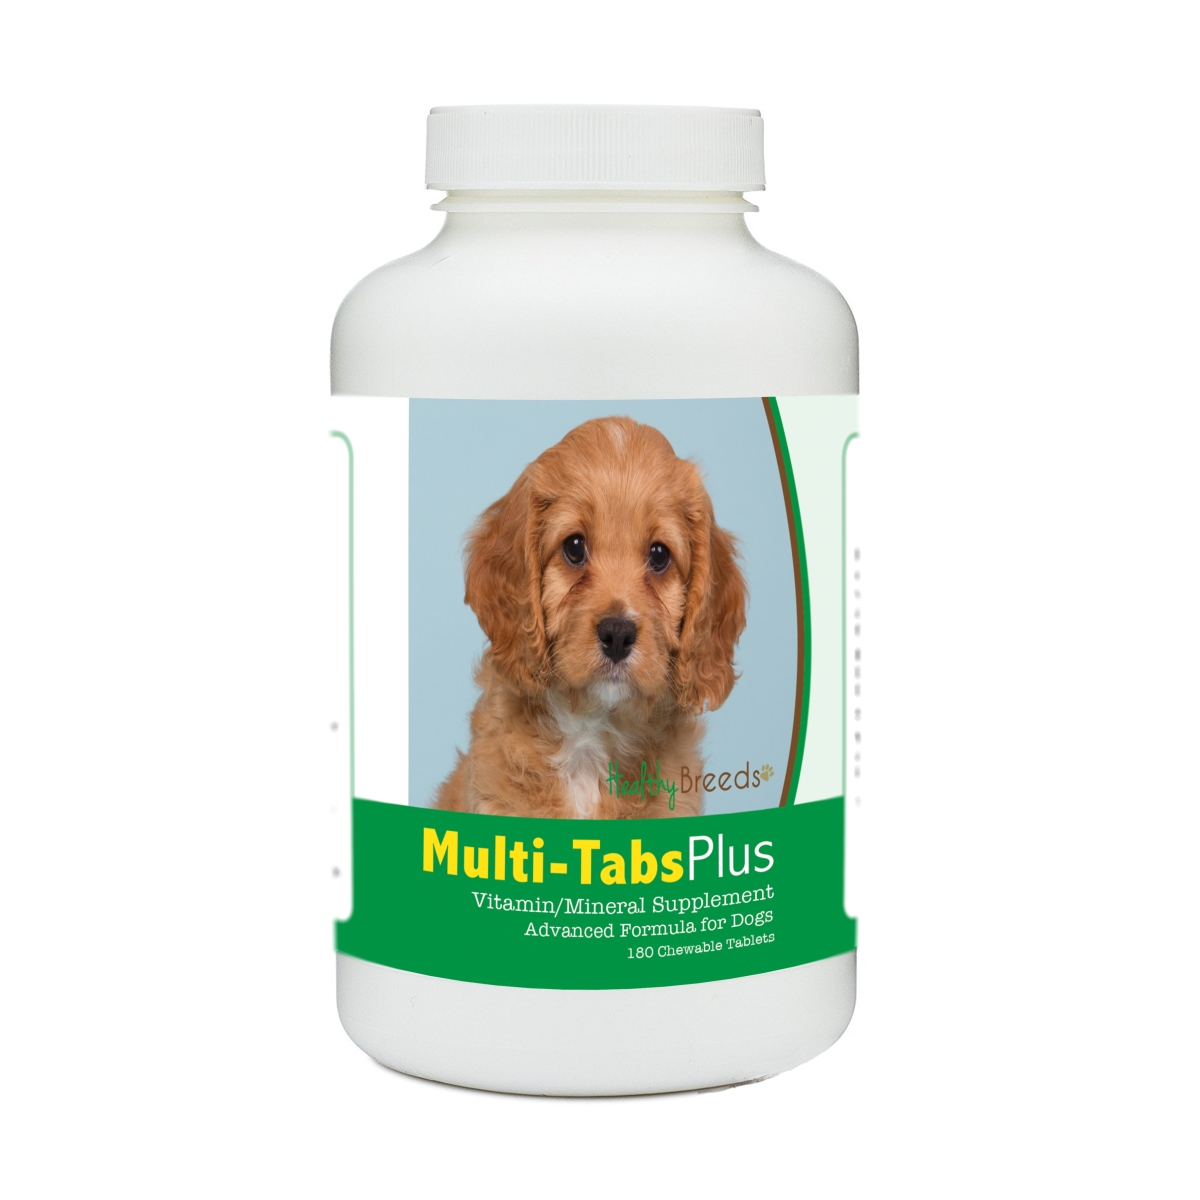 Healthy Breeds 840235177968 Cavapoo Multi-Tabs Plus Chewable Tablets - 180 Count